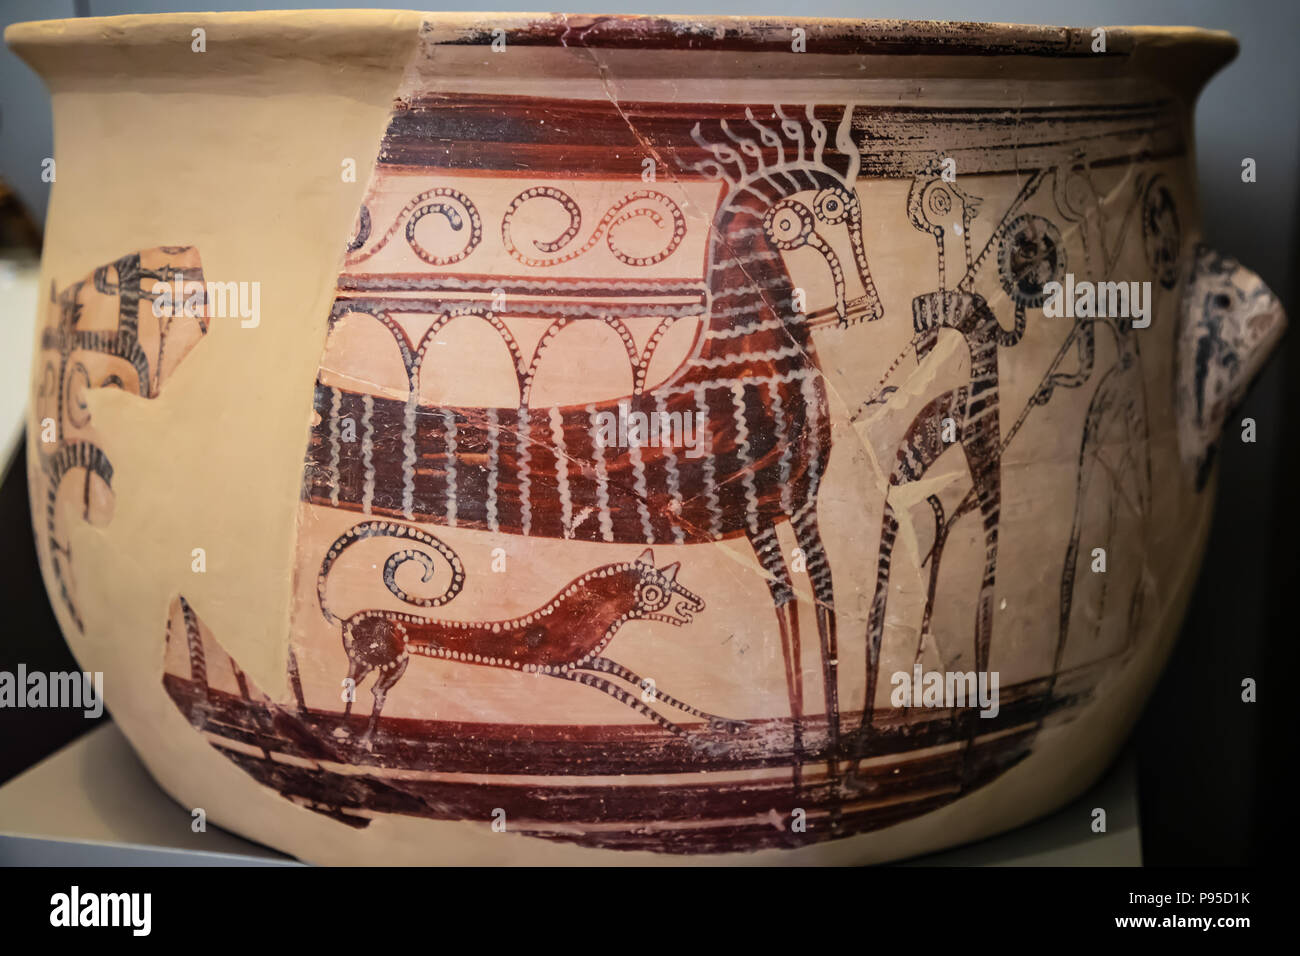 Fragments of Large Krater (Greek vessel used for wine & water), Pictorial Pottery from Tiryns Workshop, Two-horse Chariot, 13th - 12th Century. - Stock Image